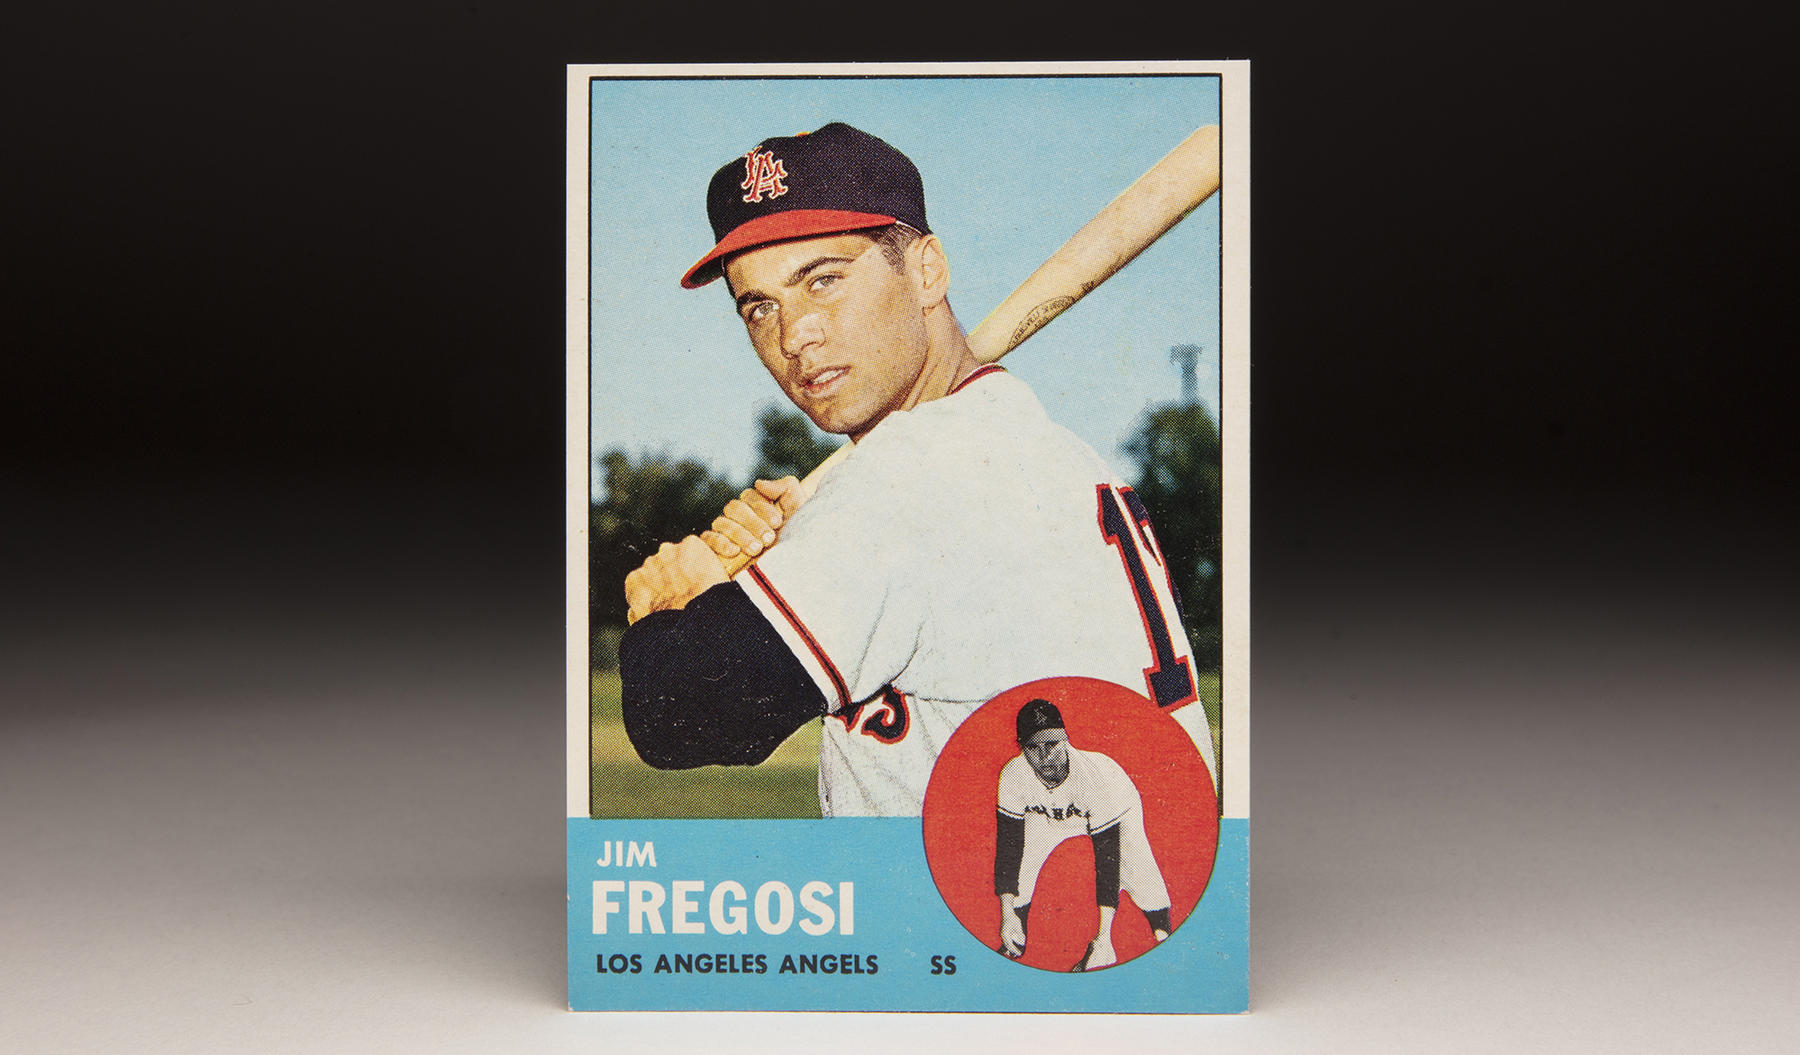 Jim Fregosi debuted with the Angels in 1961 and found himself on the 1963 Topps set after a promising rookie campaign in 1962. (Milo Stewart Jr./National Baseball Hall of Fame and Museum)